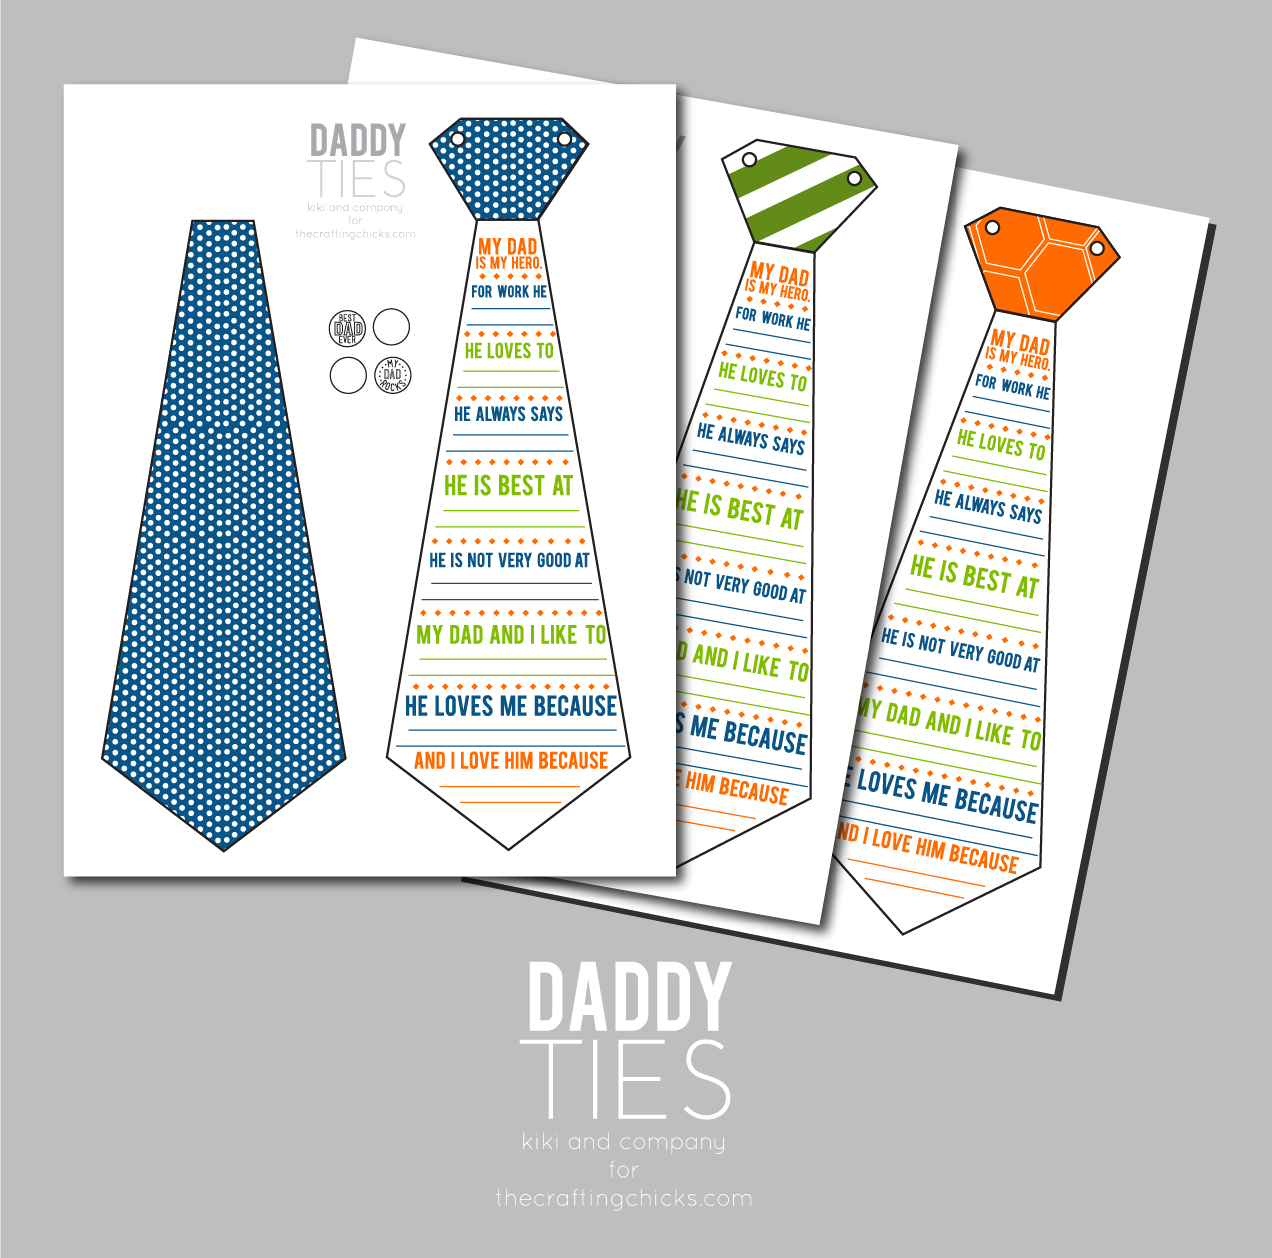 The Daddy Ties - A Handmaade Father's Day Gift Idea